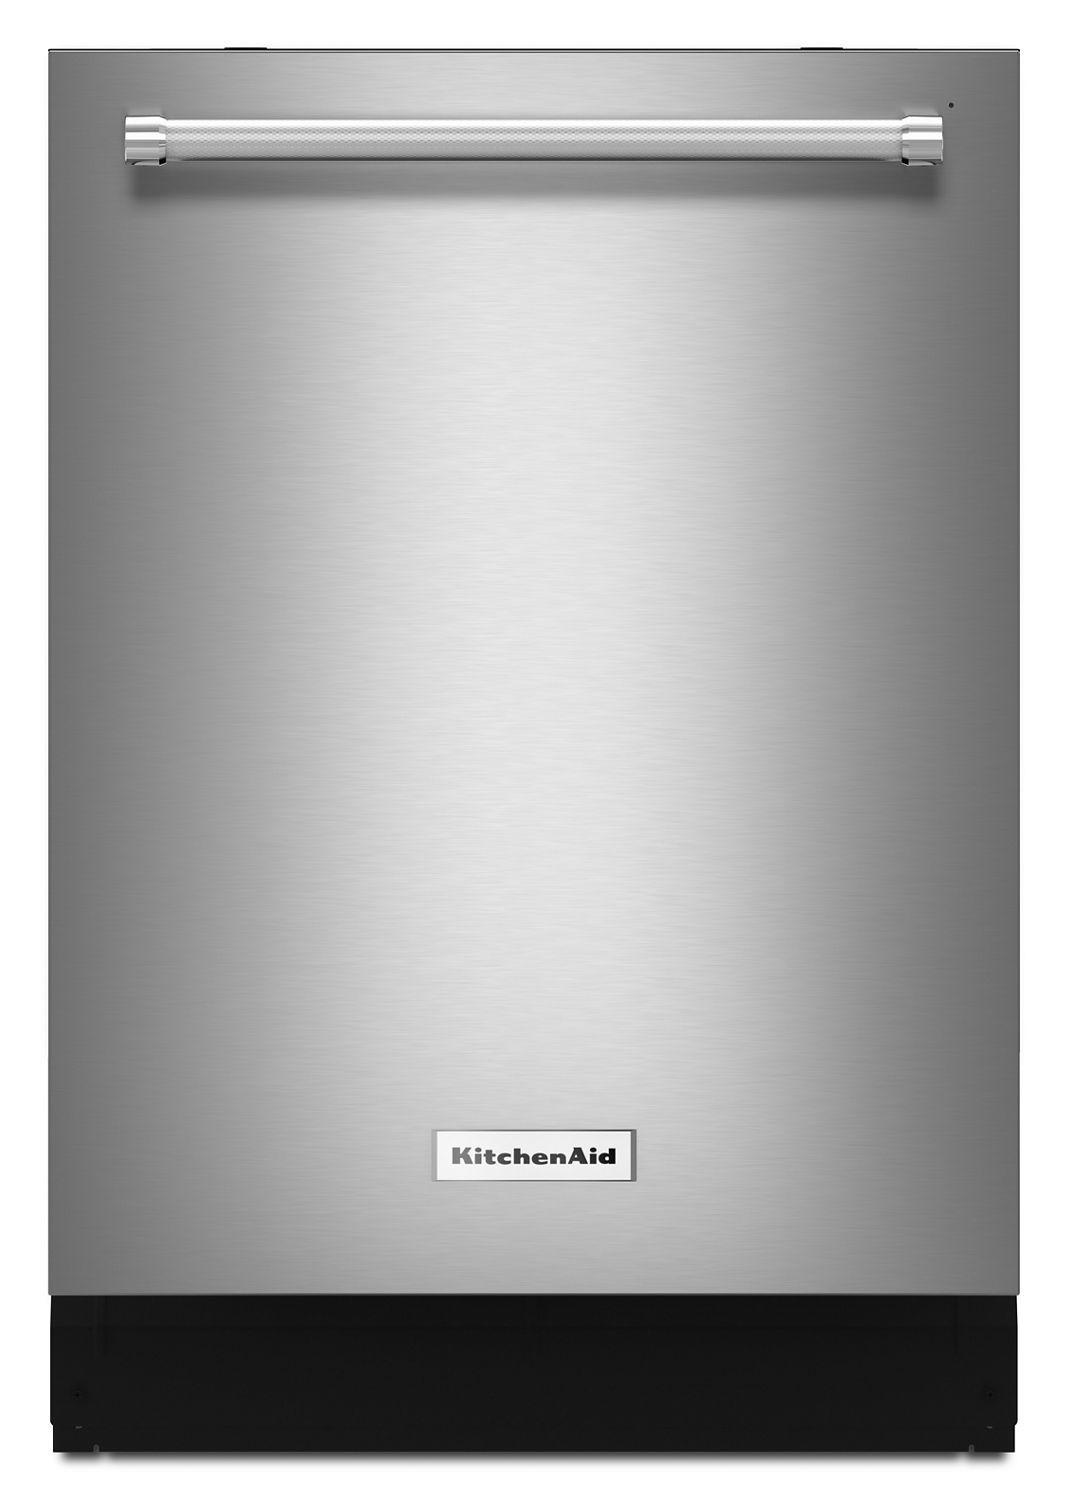 Kitchenaid44 Dba Dishwasher With Dynamic Wash Arms And Bottle Wash Stainless Steel